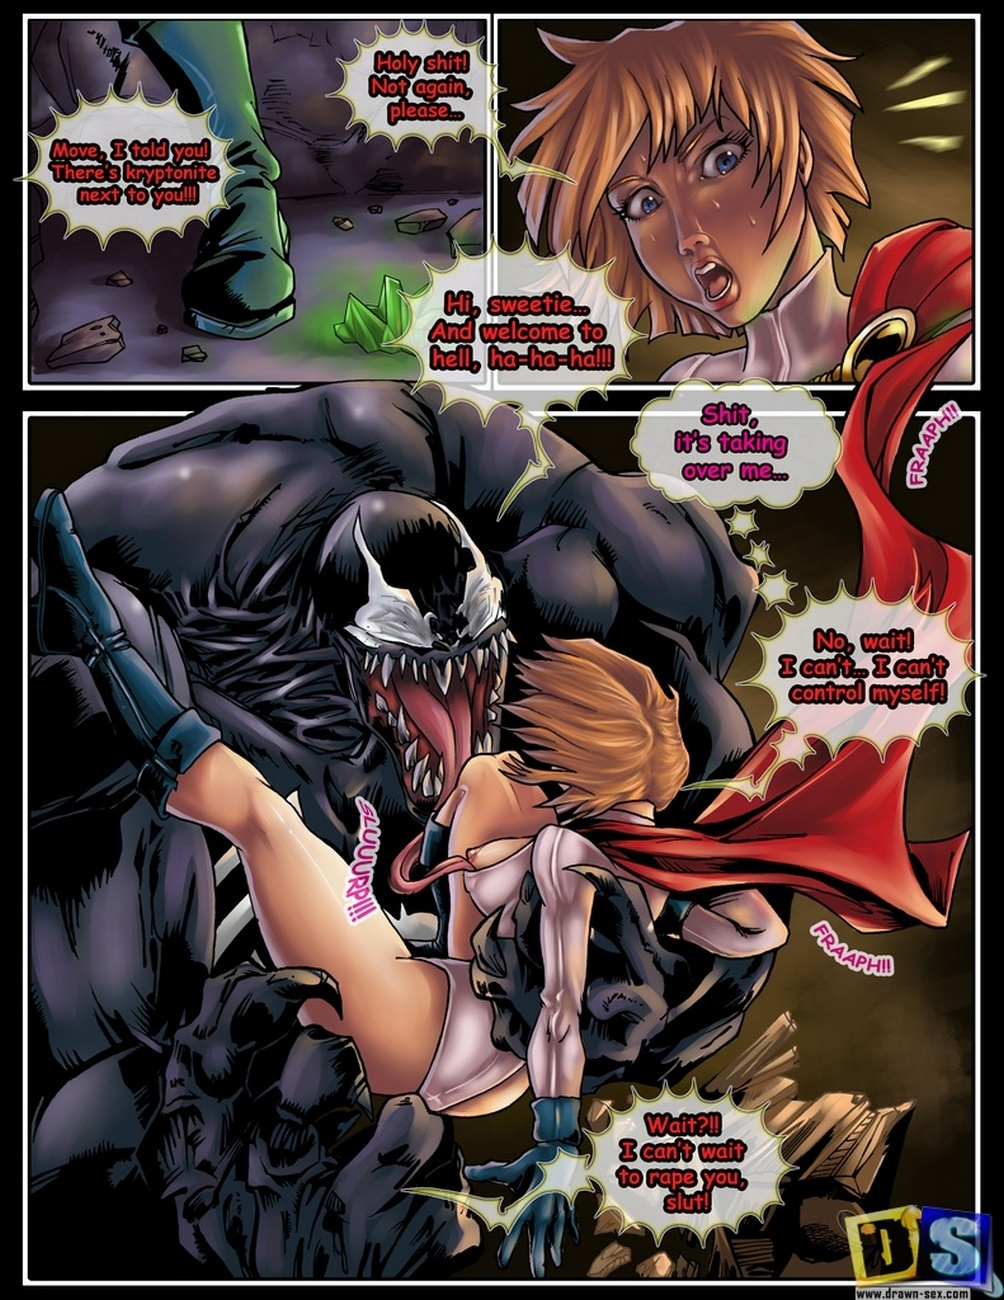 Venom power girl vs